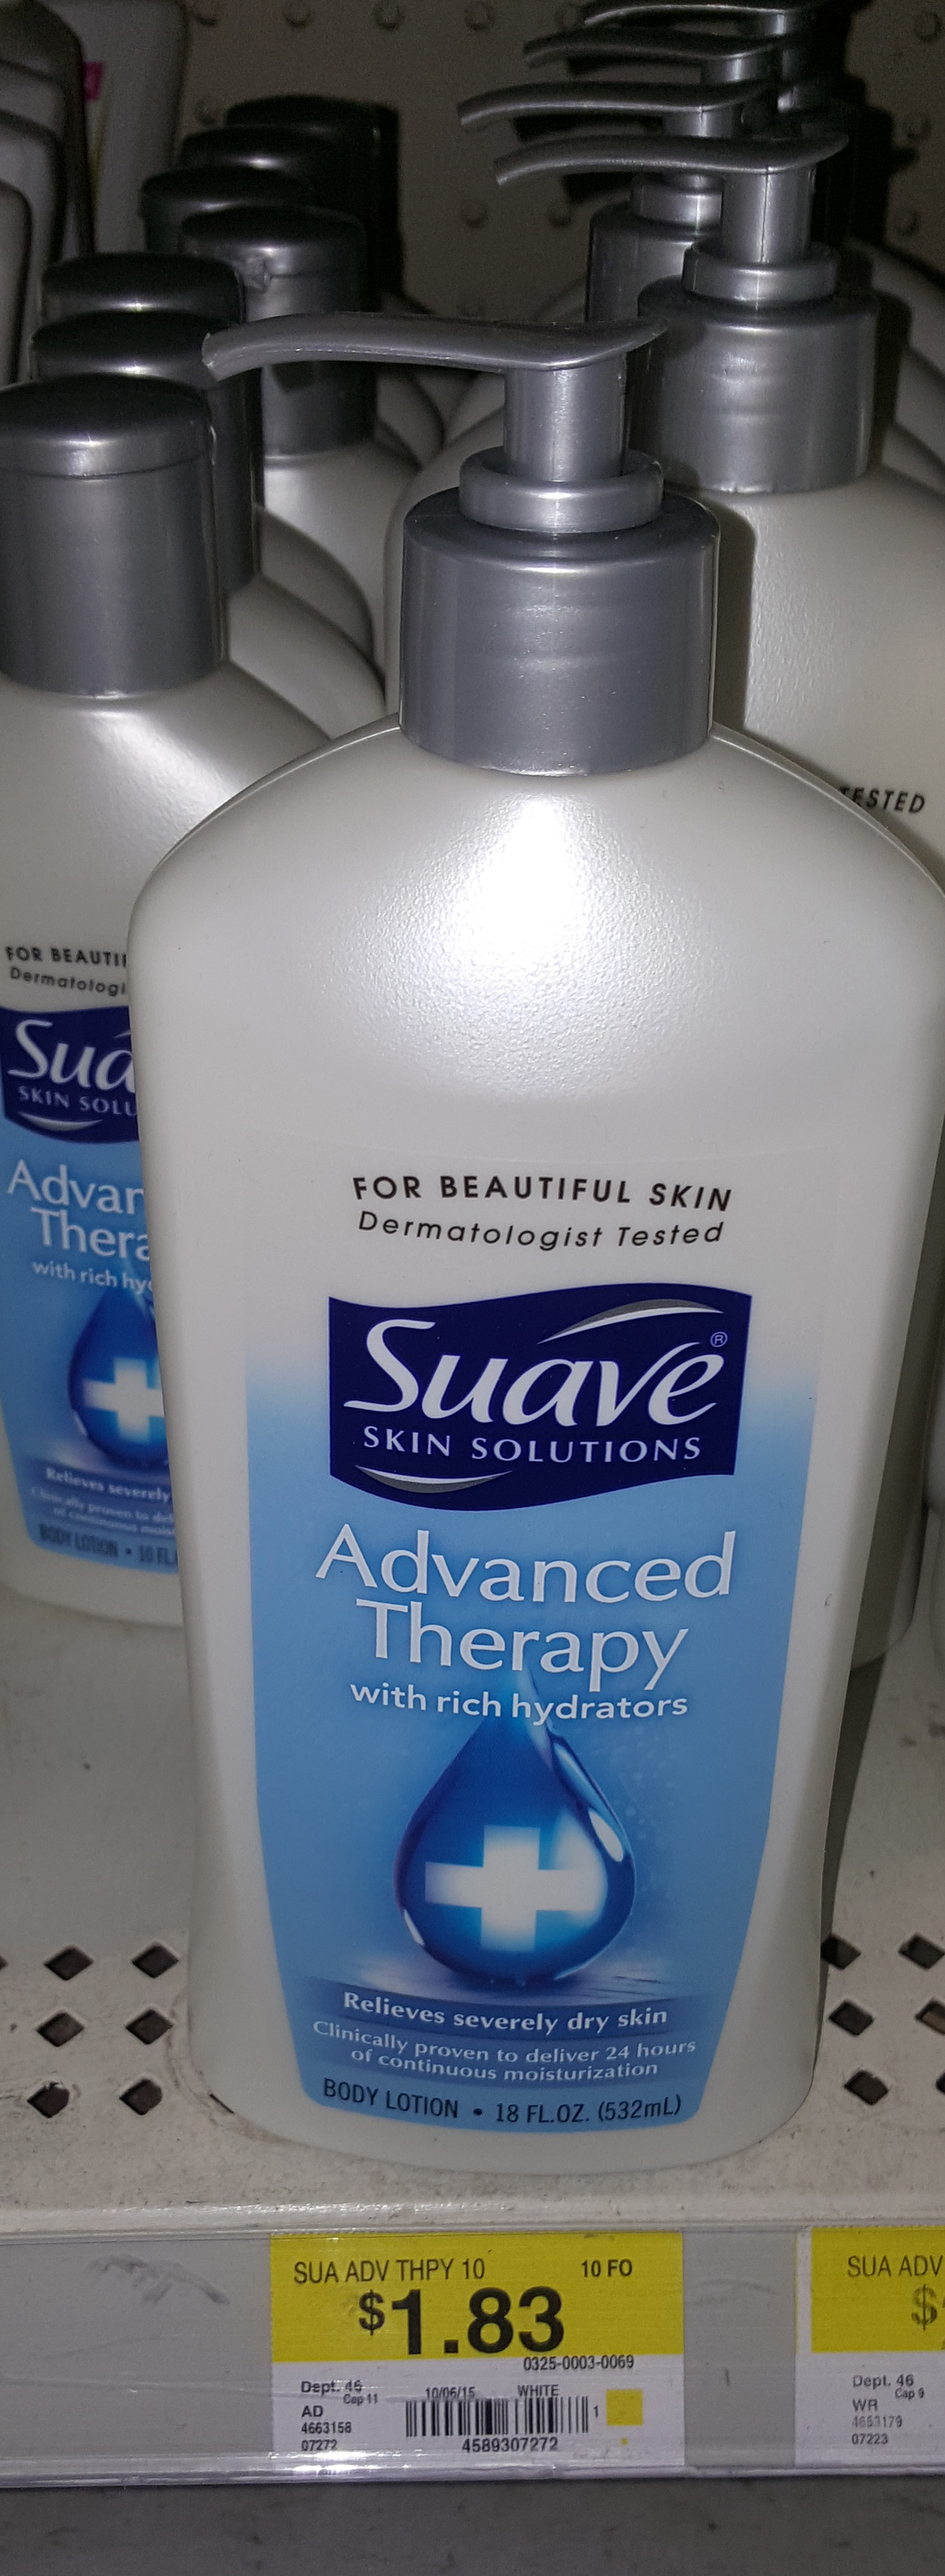 Suave Advanced Therapy Lotion Just $.83 at Walmart!